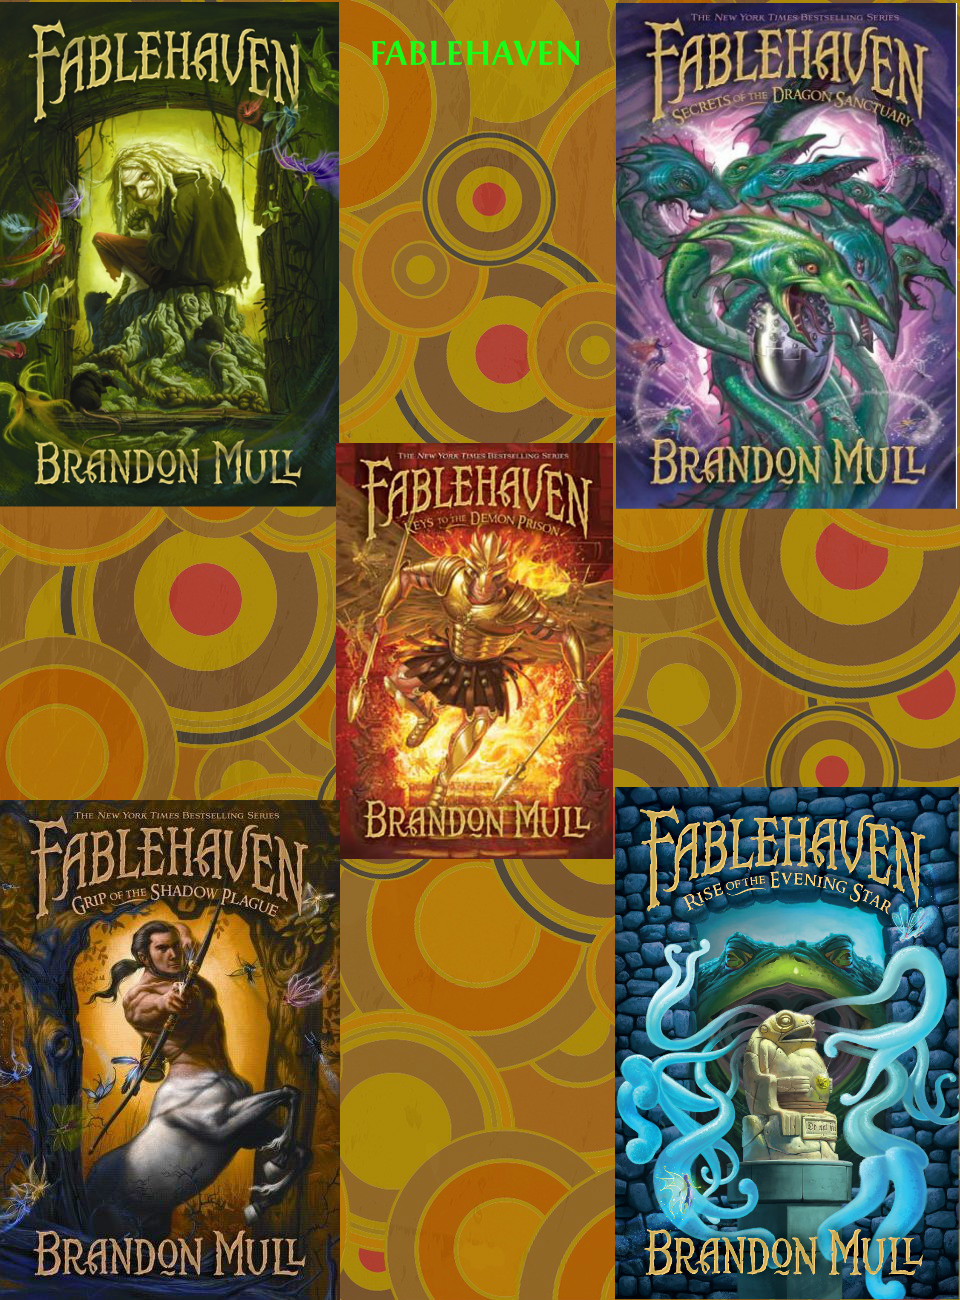 Fablehaven Sancutary